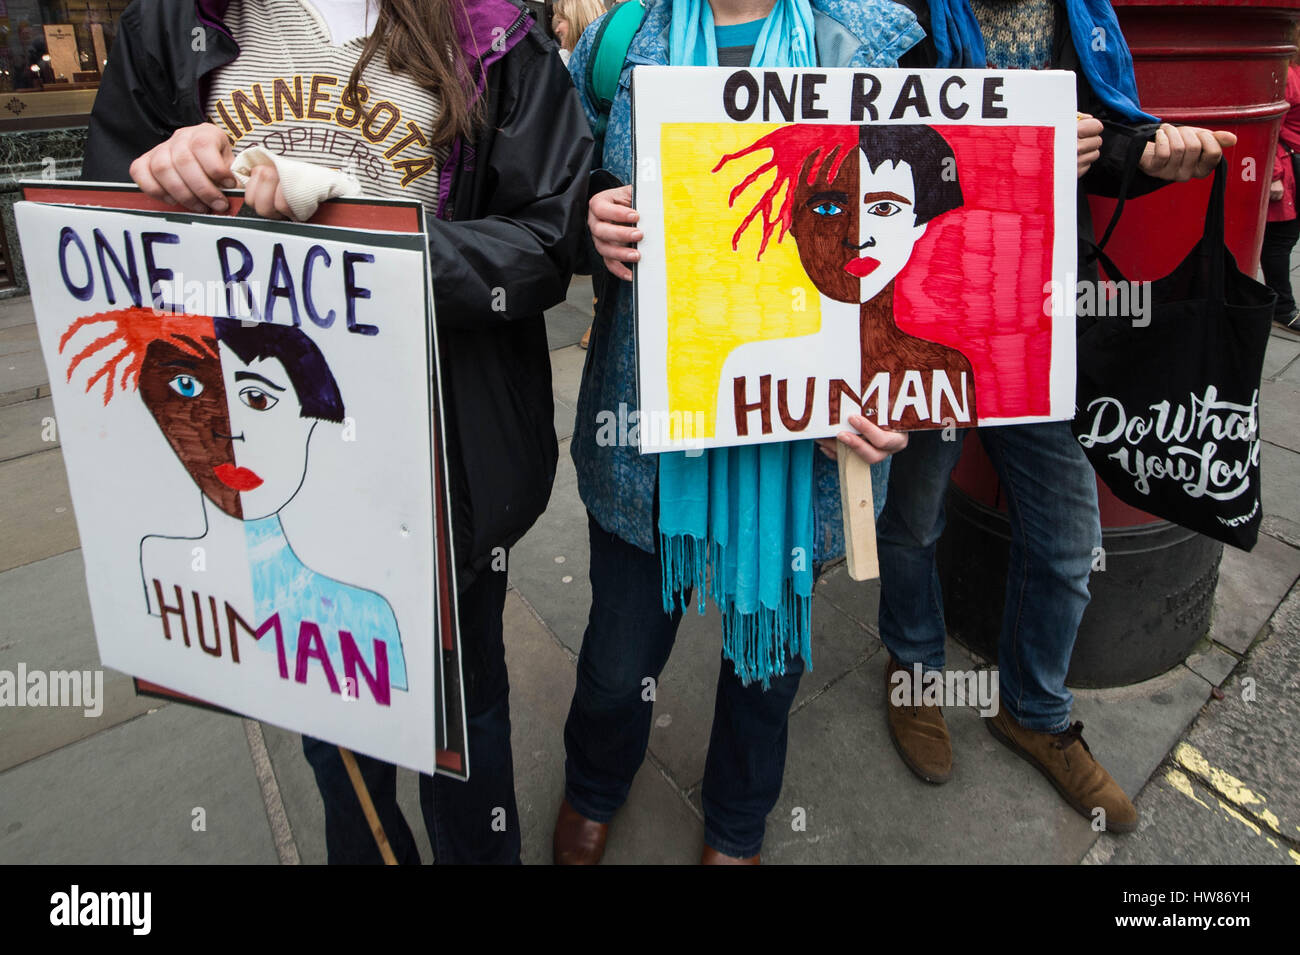 London, UK. 18th March, 2017. UN International Anti-Racism Day draws tens of thousands of protesters. © Guy Corbishley/Alamy Stock Photo